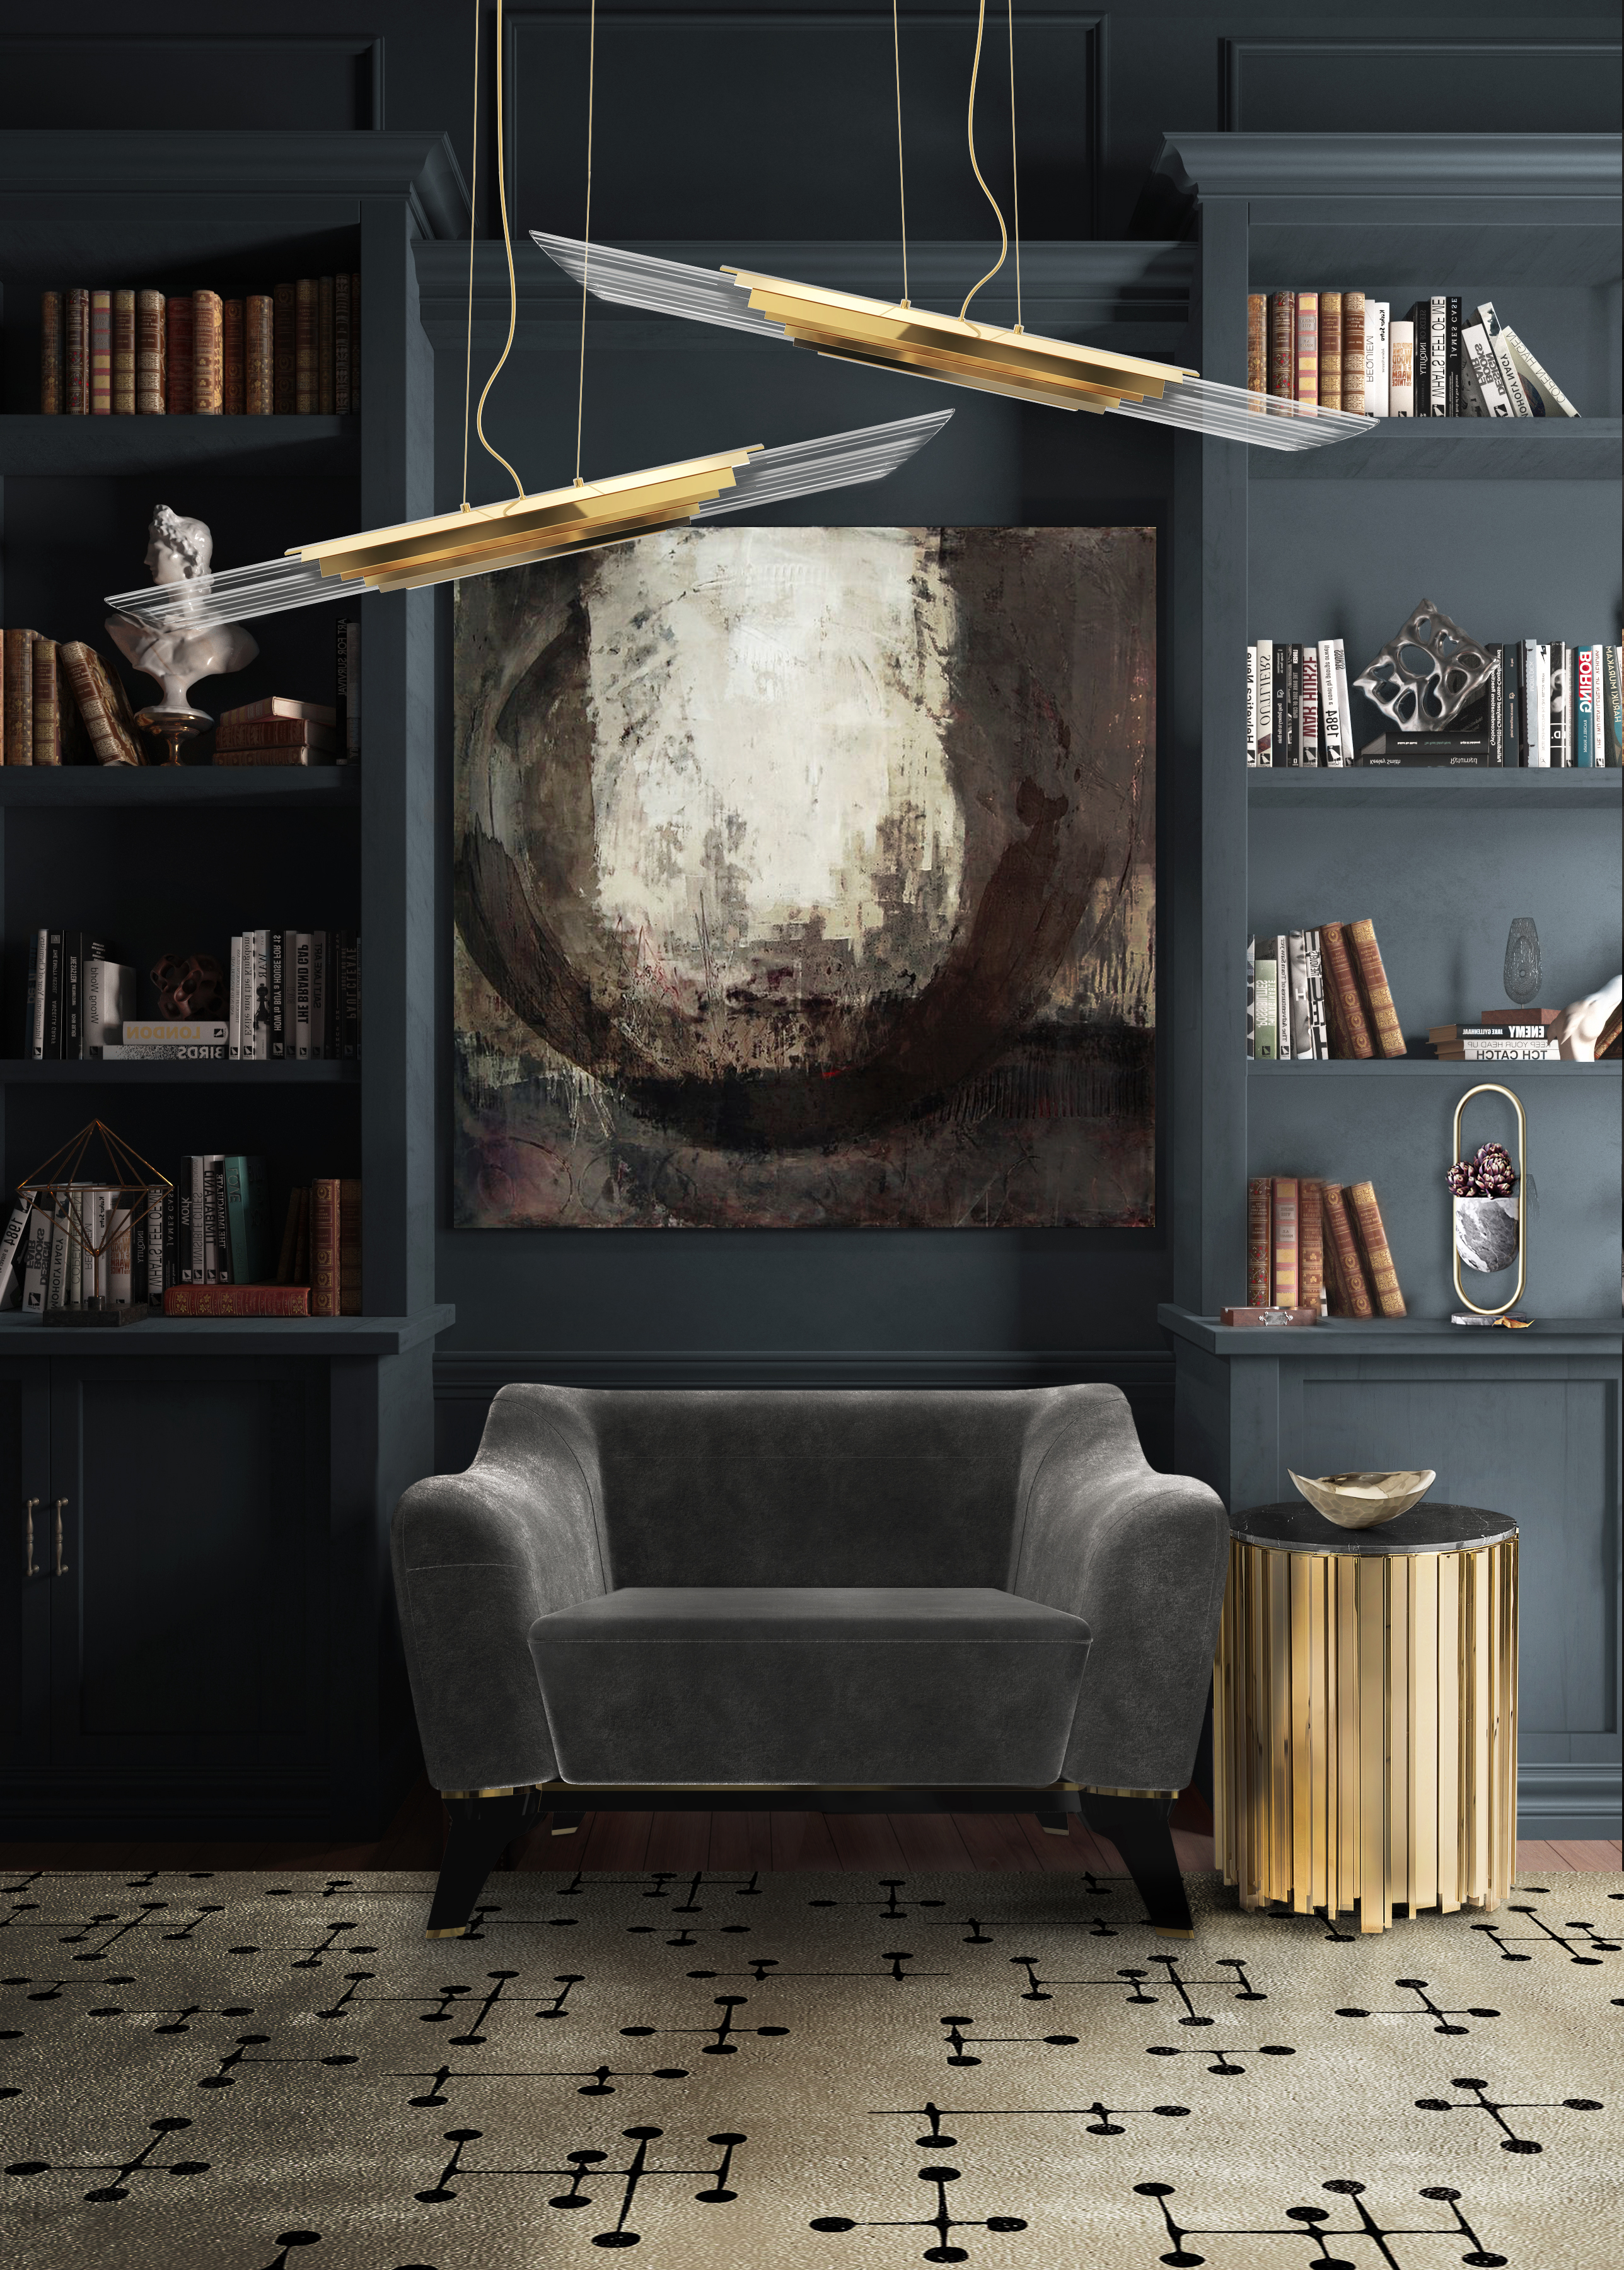 Stunning Interiors in the 2018 Fall Color Trends 04 Fall Color Trends Stunning Interiors in the 2018 Fall Color Trends Stunning Interiors in the Fall Color Trends 04